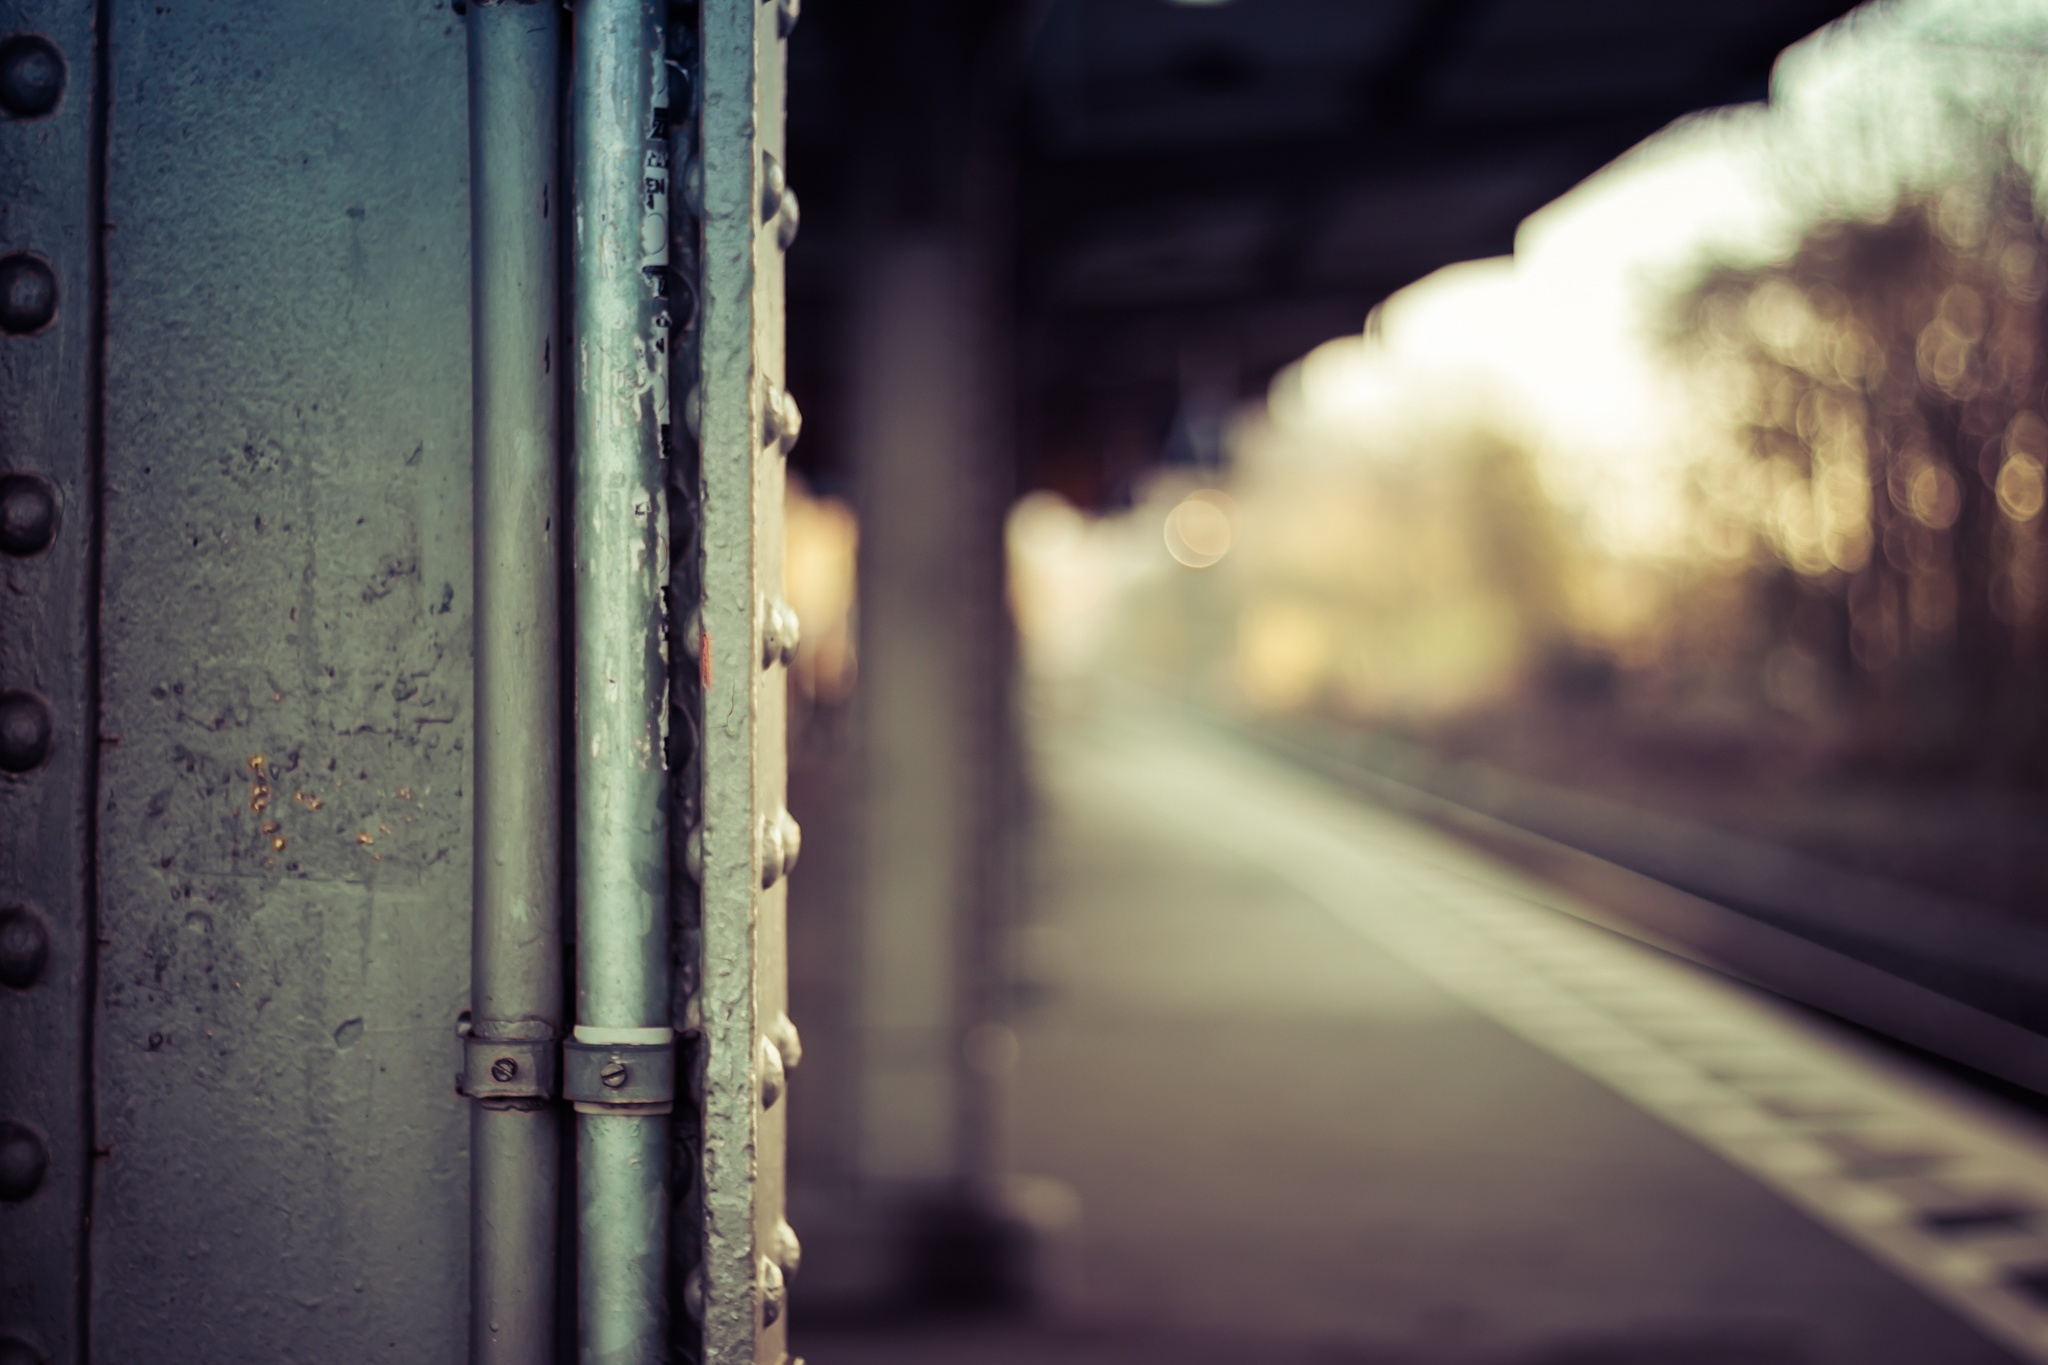 Platform With Limited Sight by OKO